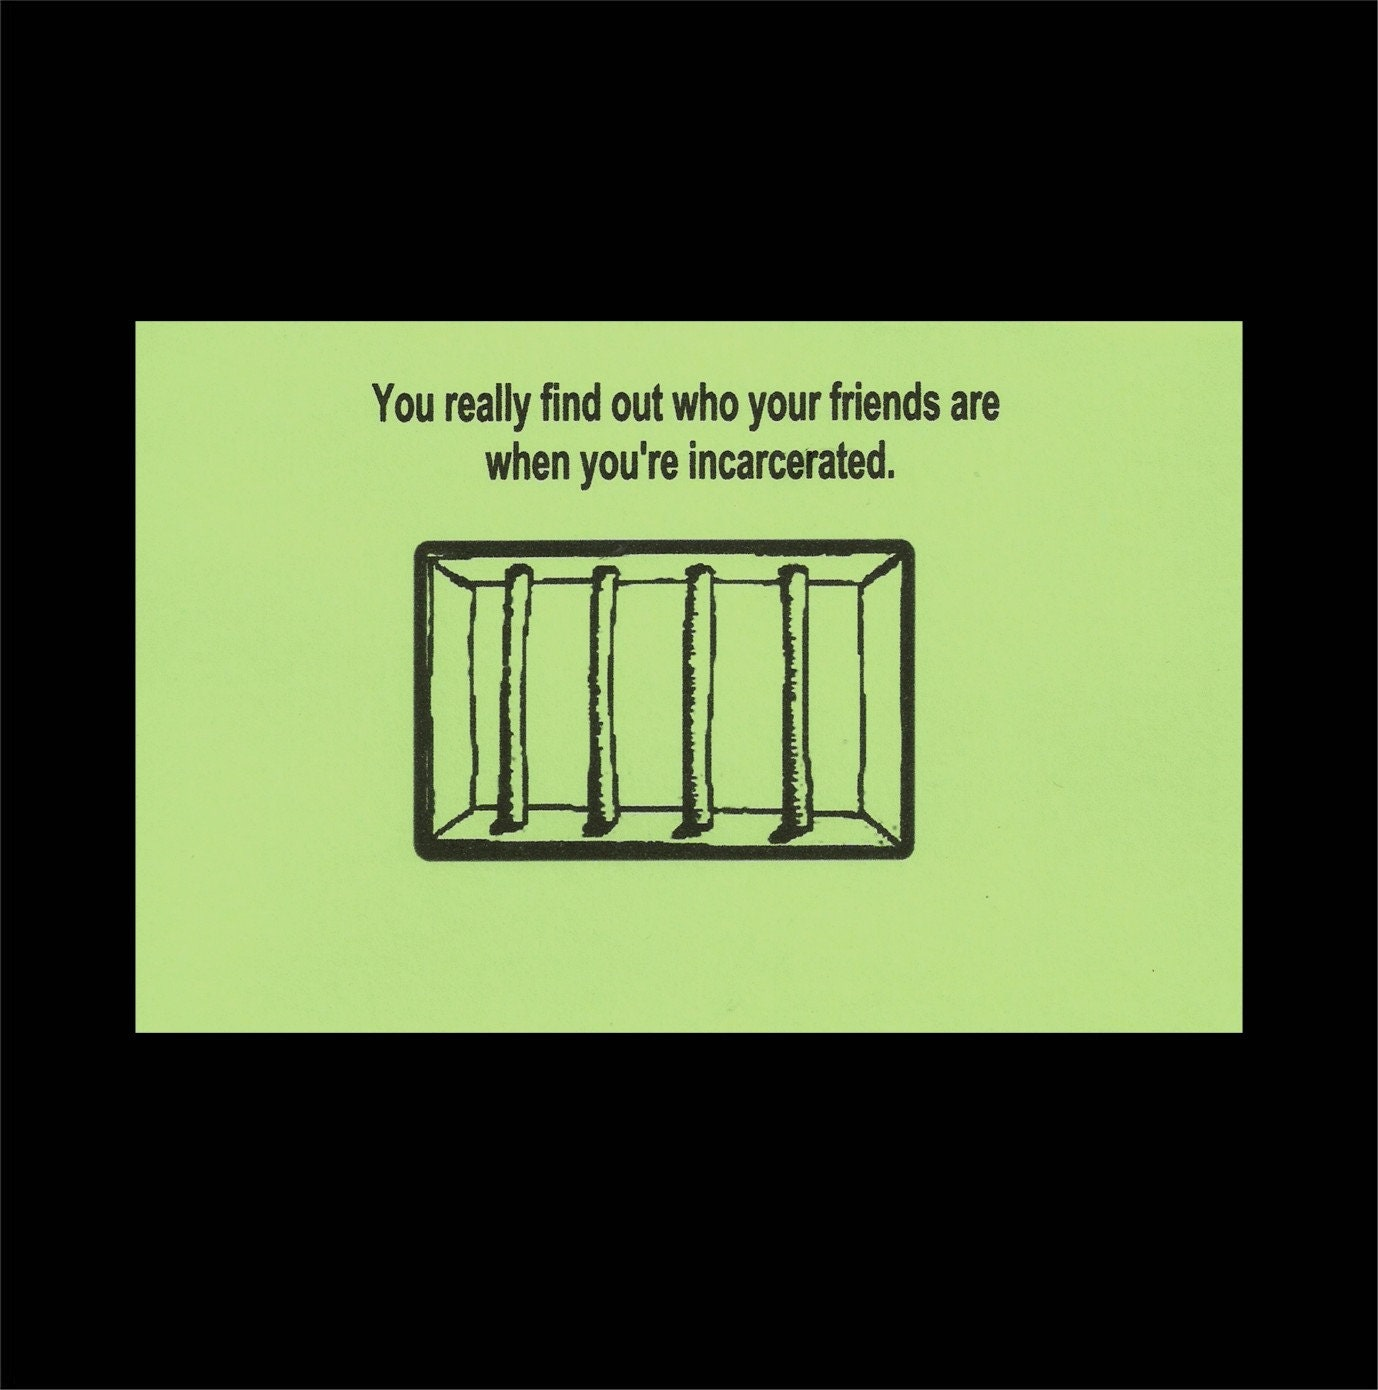 Prison Greeting Card Humorous Card Jail Card Incarceration Etsy